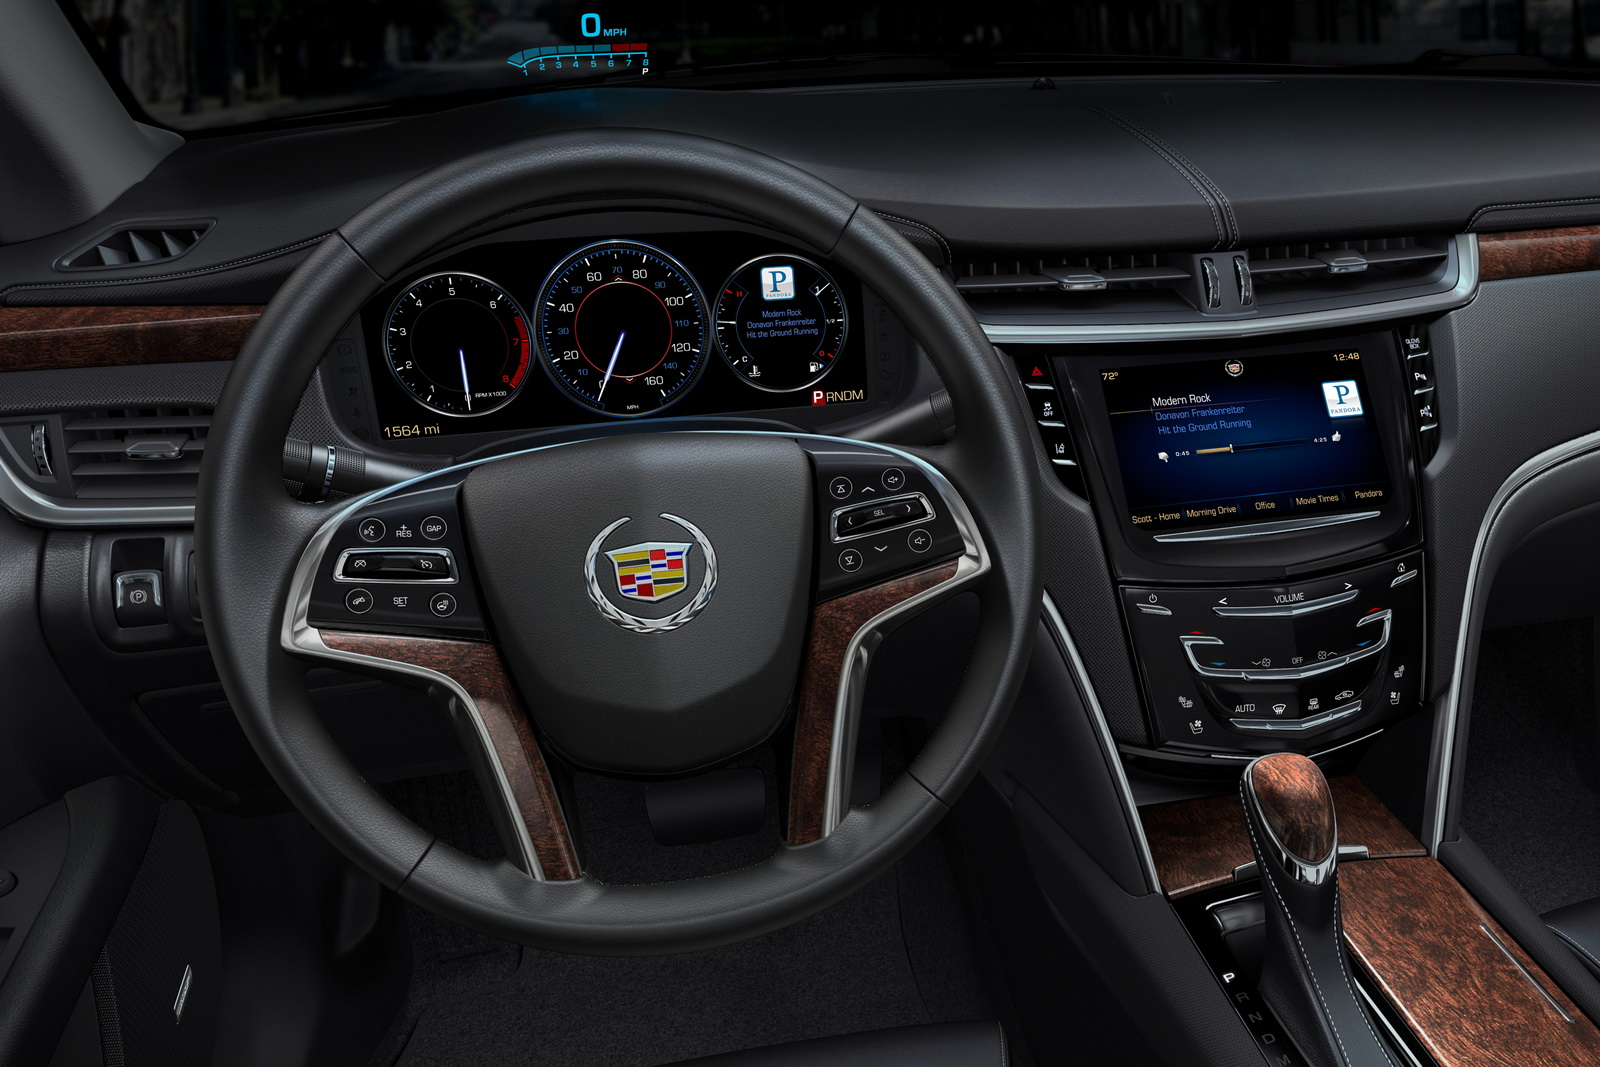 cadillac cue infotainment system in 2012 xts interior revealed video autoevolution. Black Bedroom Furniture Sets. Home Design Ideas